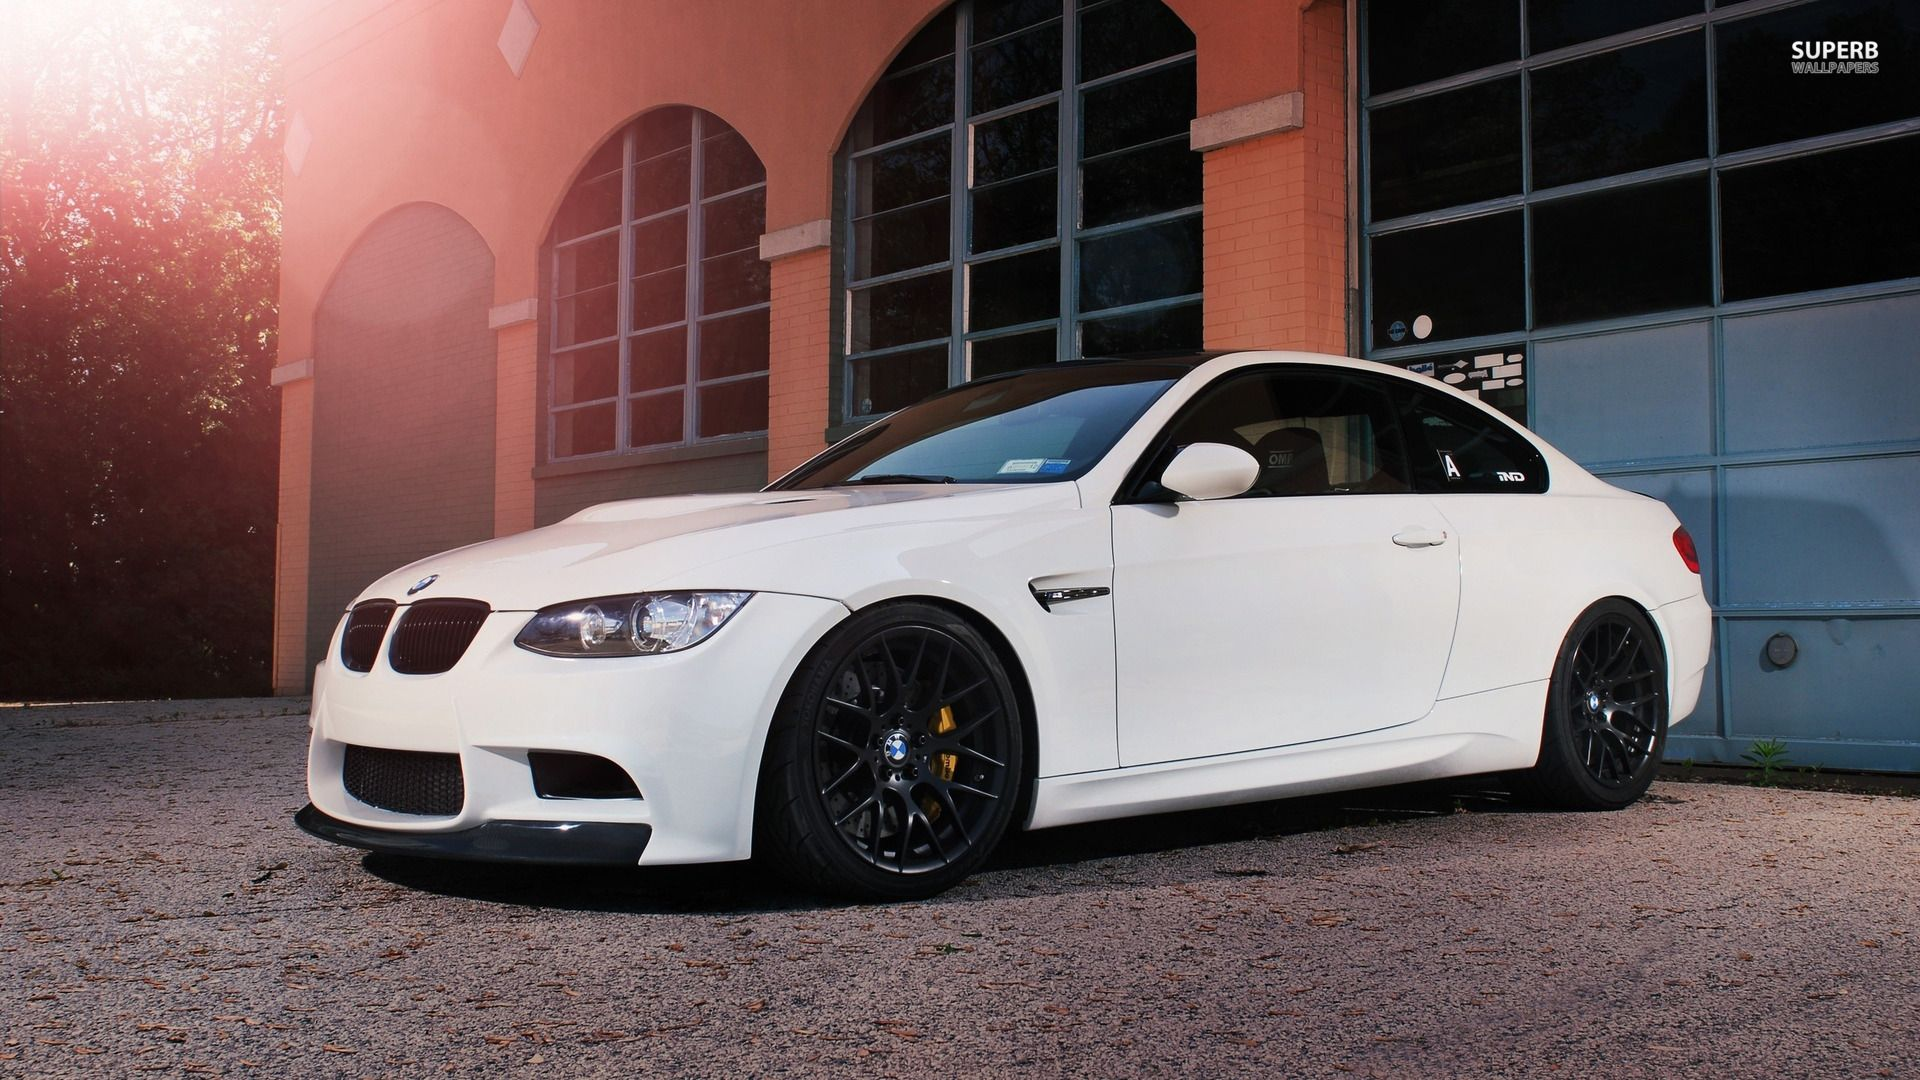 Bmw m3 limited edition 2013 bmw m3 e92 white bmw white bmw free search results for bmw 2013 wallpaper adorable wallpapers voltagebd Images